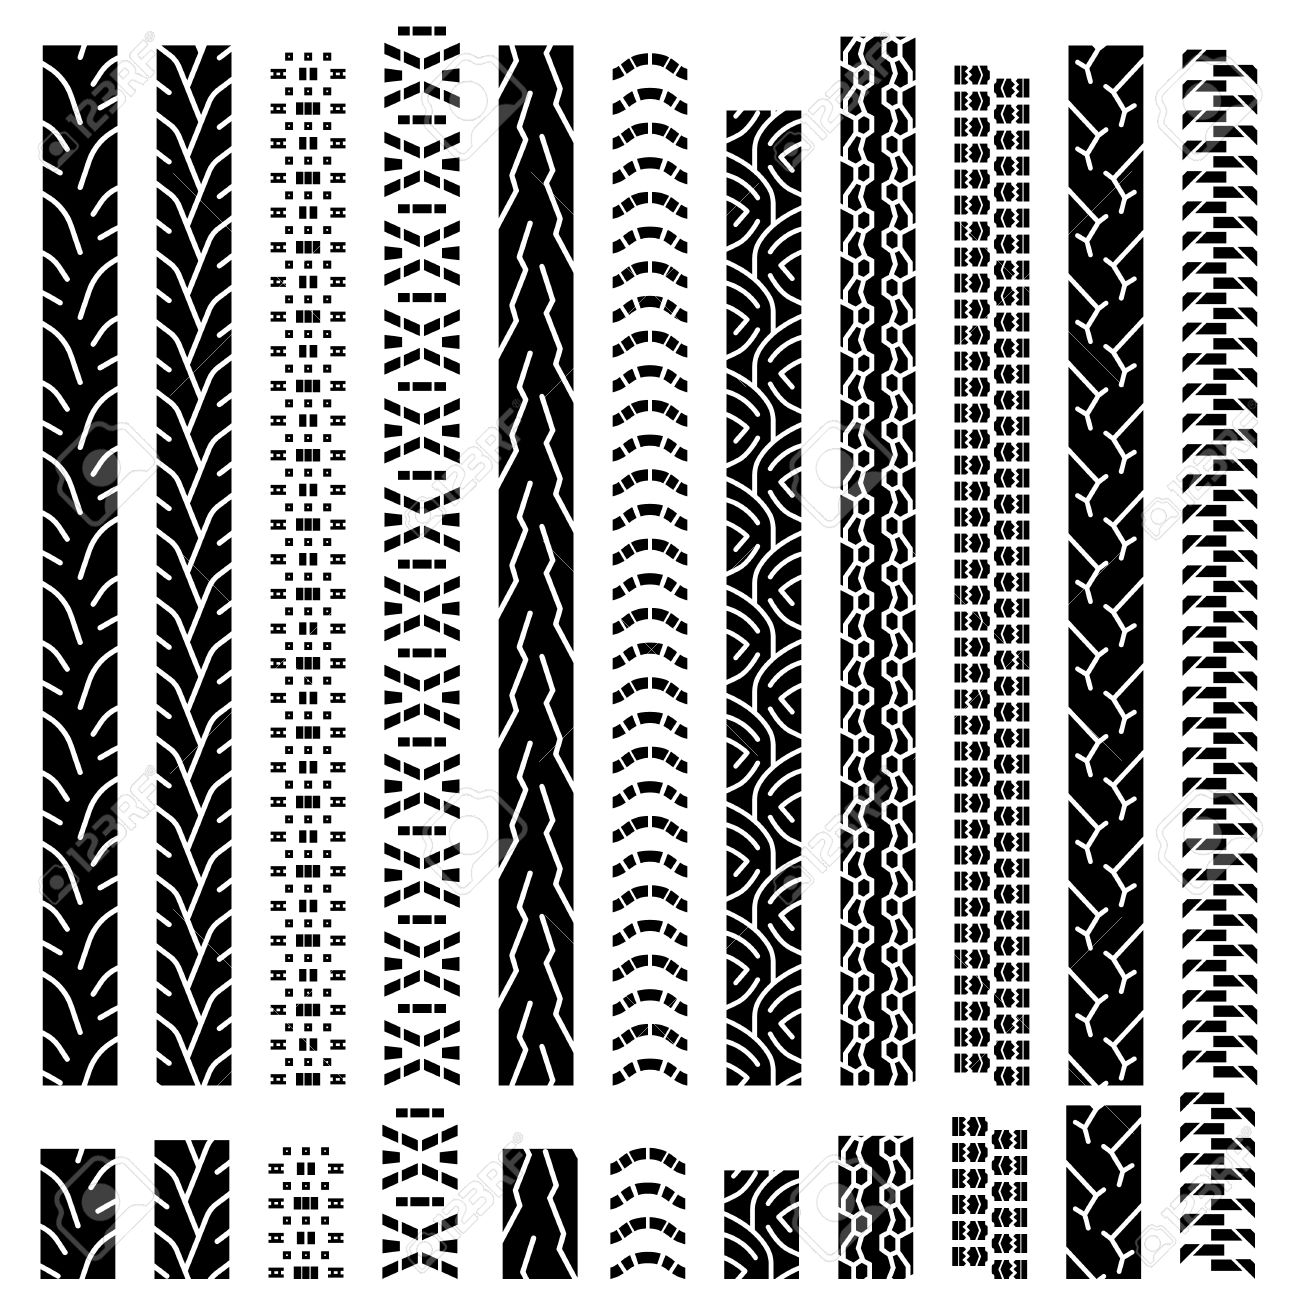 Collection textures of vector tire tracks, tire marks, tire tread, tread marks silhouette / pattern for machine and vehicle - 53919312